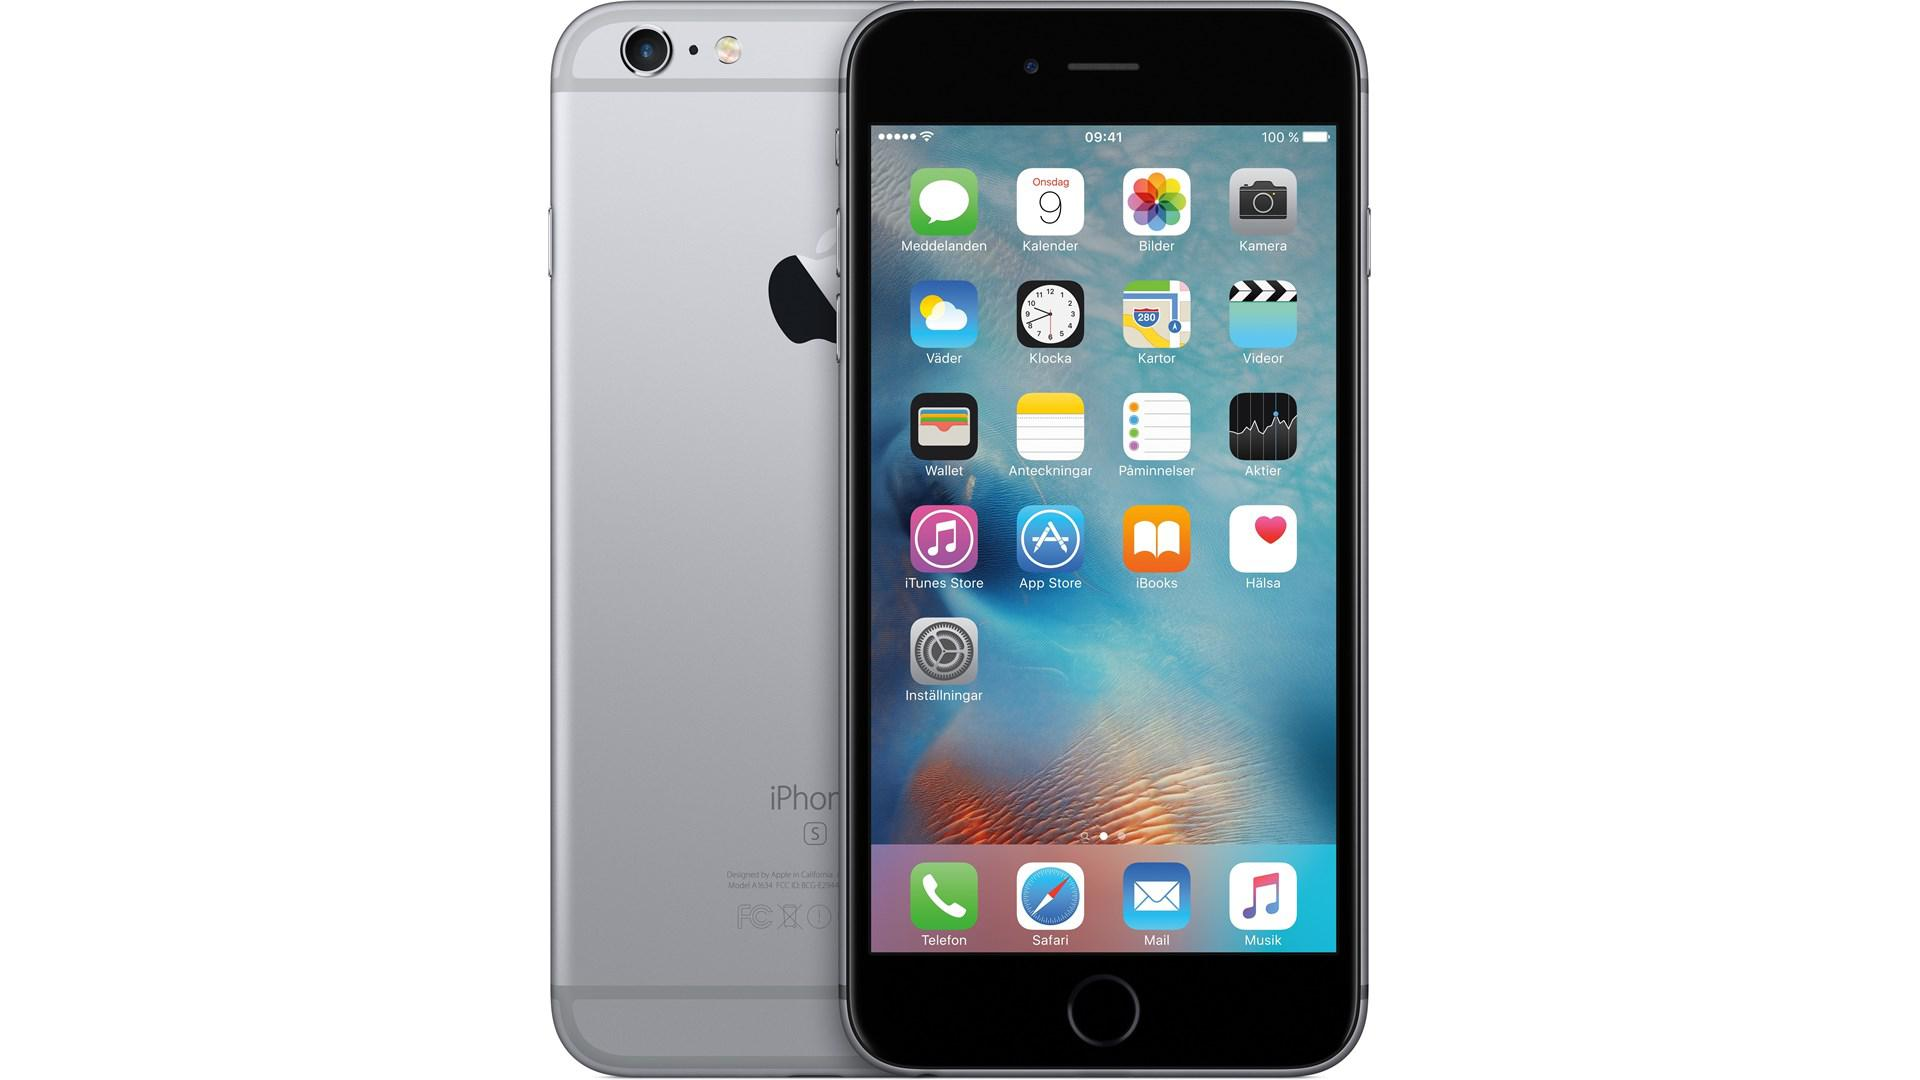 APPLE iPhone 6 S Plus 32GB Space-Grå